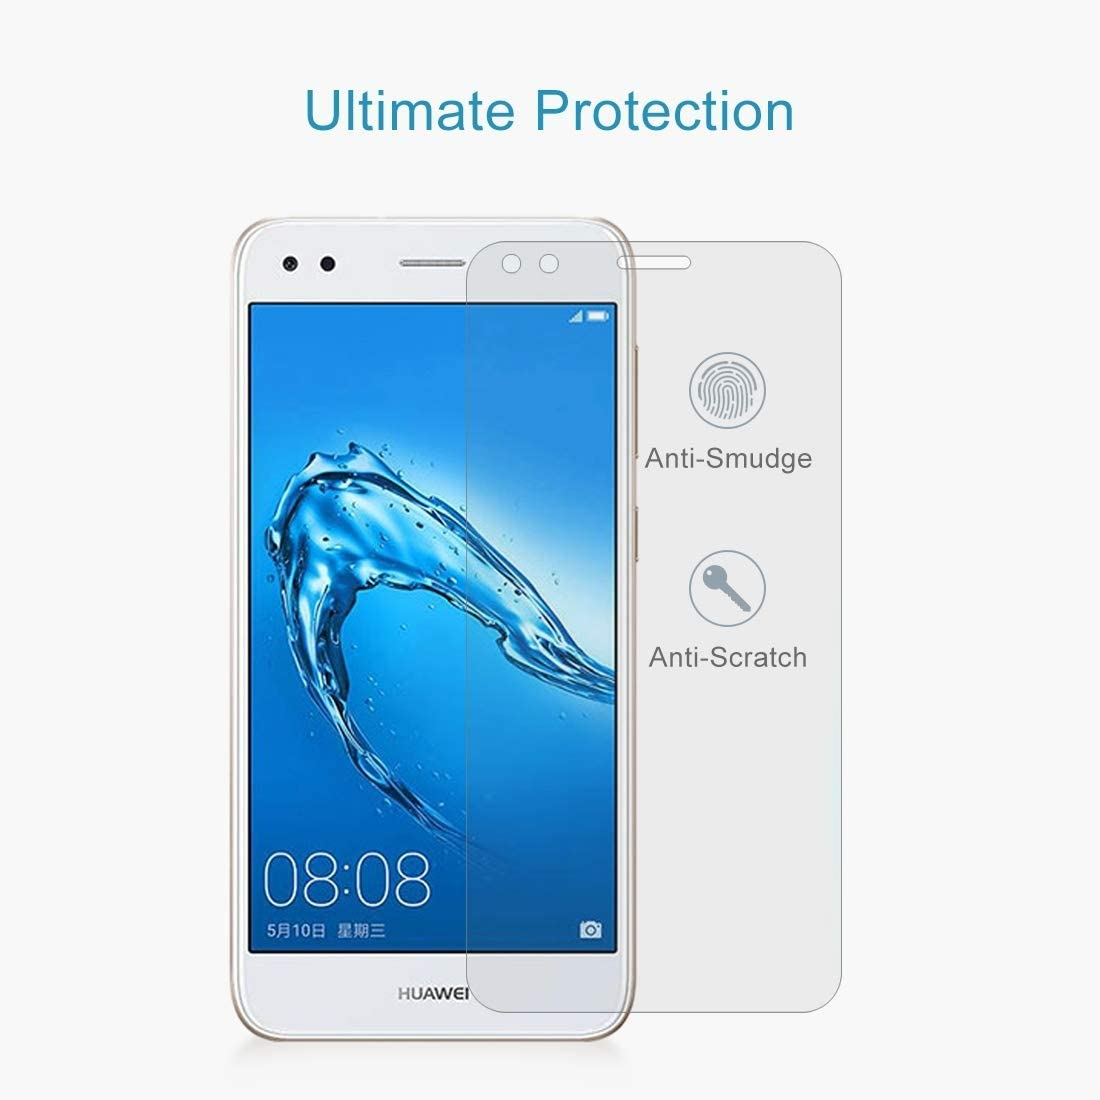 0.26mm 9H Surface Hardness 2.5D Curved Edge Tempered Glass Screen Protector zys 2017 ZHANGYUNSHENG 100 PCS for Huawei Y6 Pro